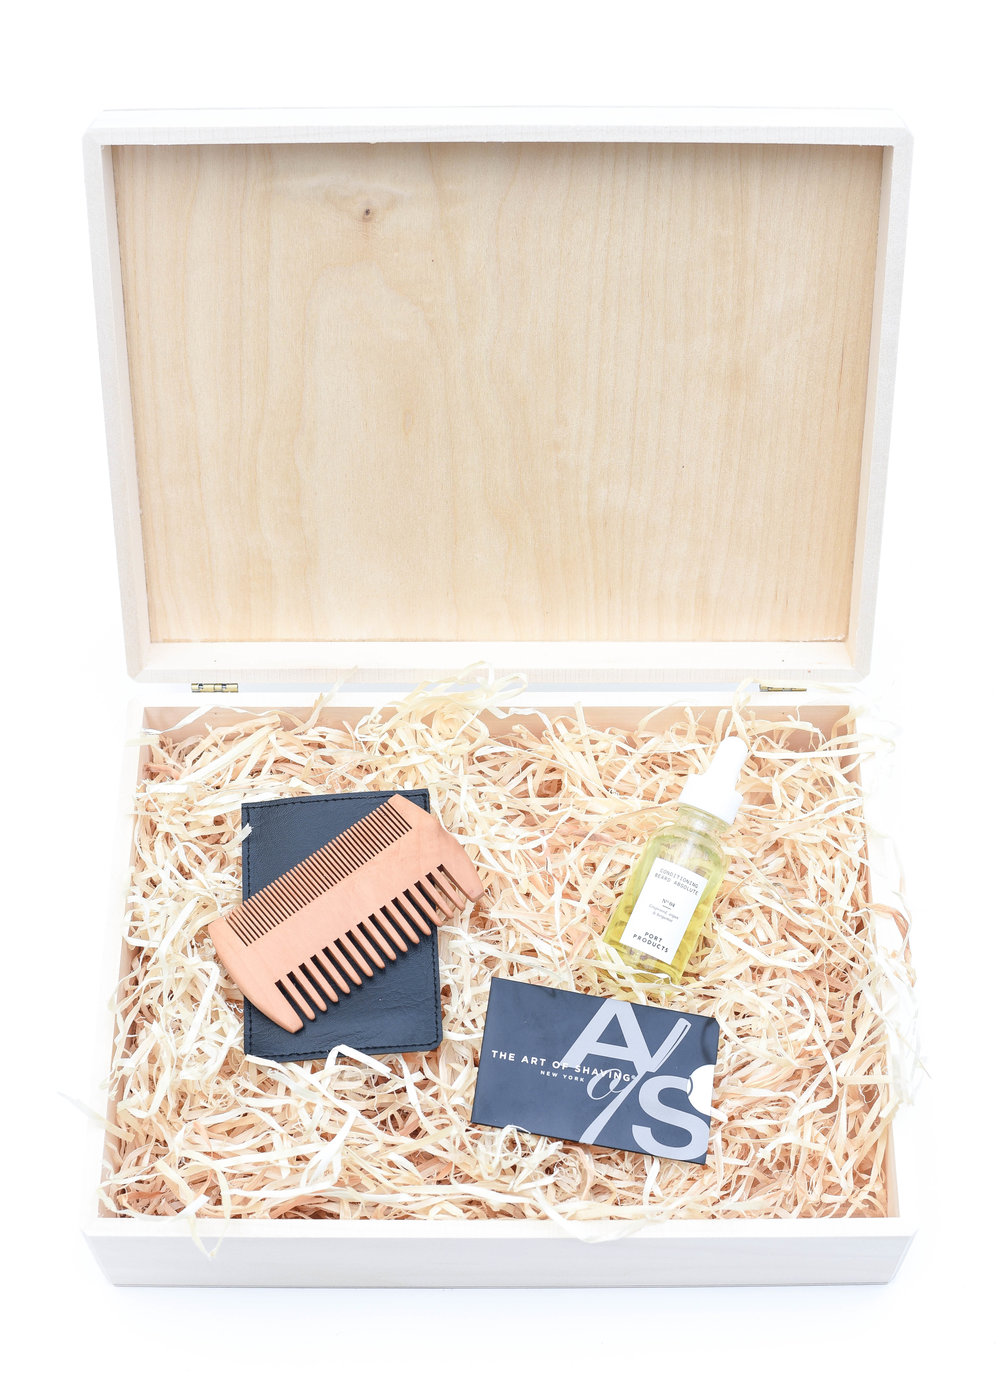 Gift Set for Beards - With a somewhat newly bearded man in my house, I have an inkling you too may have a man or two with facial hair on your Holiday List.  So, to keep things simple, here's a couple of our tried and true picks for Beard Care.  For purchase info, click links below:L:R  | Beard Comb | Beard Conditioning Oil | Art of Shaving Gift Card, or better yet pick any of their products for healthy hair growth or  daily skin care |Our go to gift wrap this holiday, shown here:Unfinished Walnut Box (2 pack) | Aspen Wood Excelsior (BULK)Only needing to wrap one present?Individual Unfinished Walnut Box | Aspen Wood Excelsior (4 oz bag)